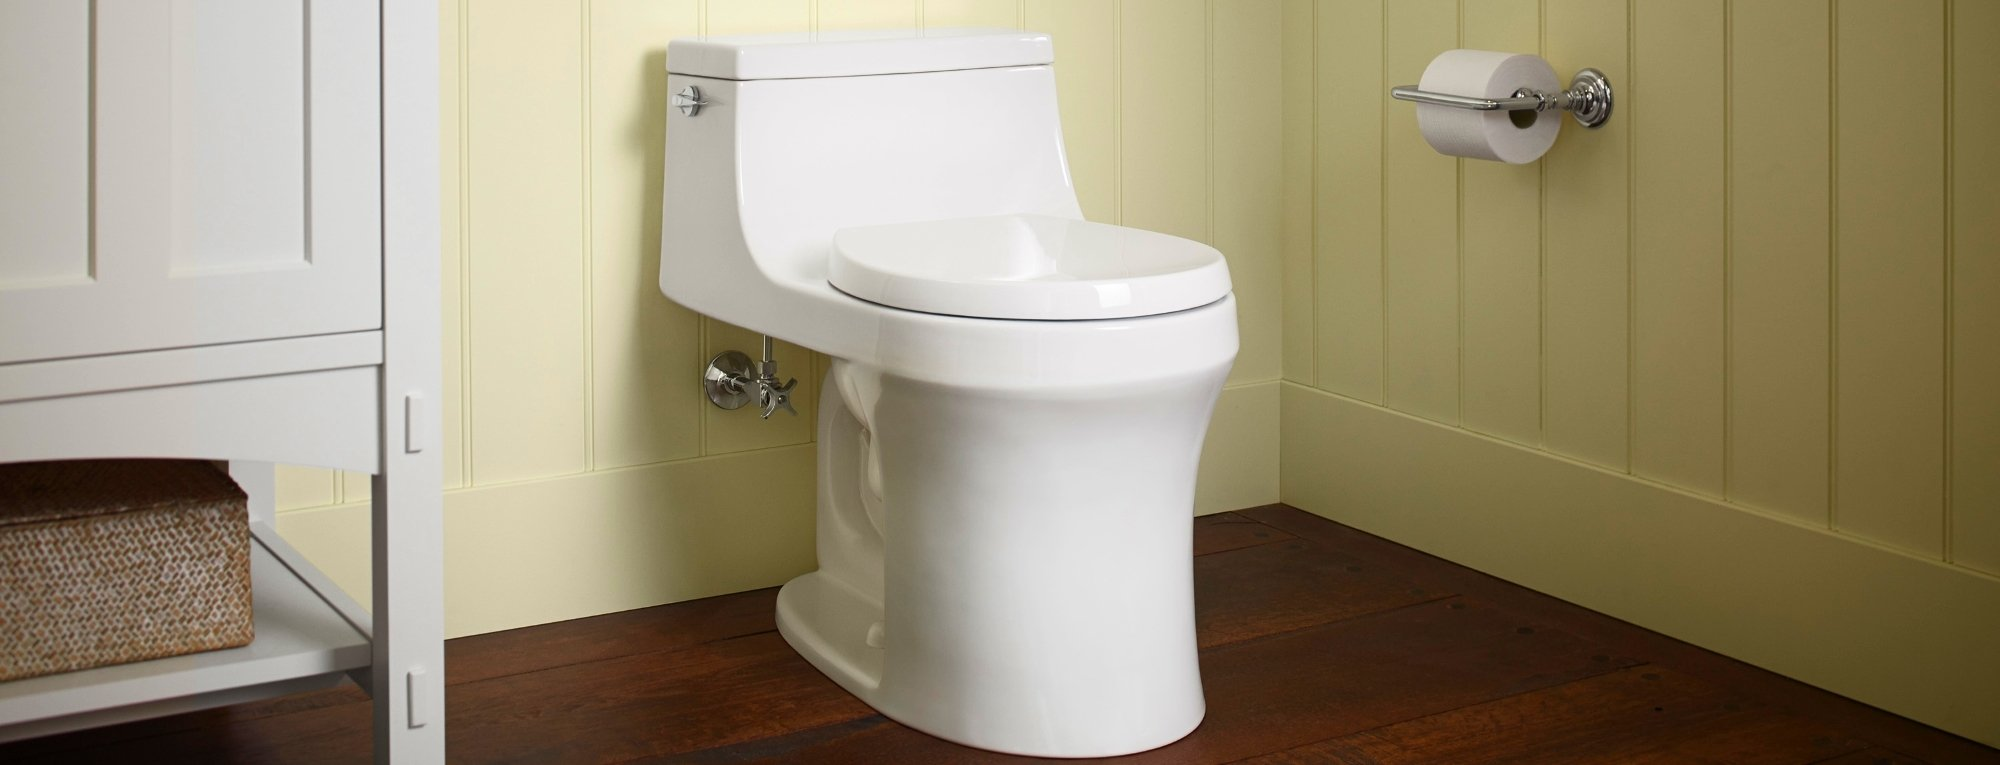 5 Best One-Piece Toilets (Oct.2018) – Reviews & Buying Guide